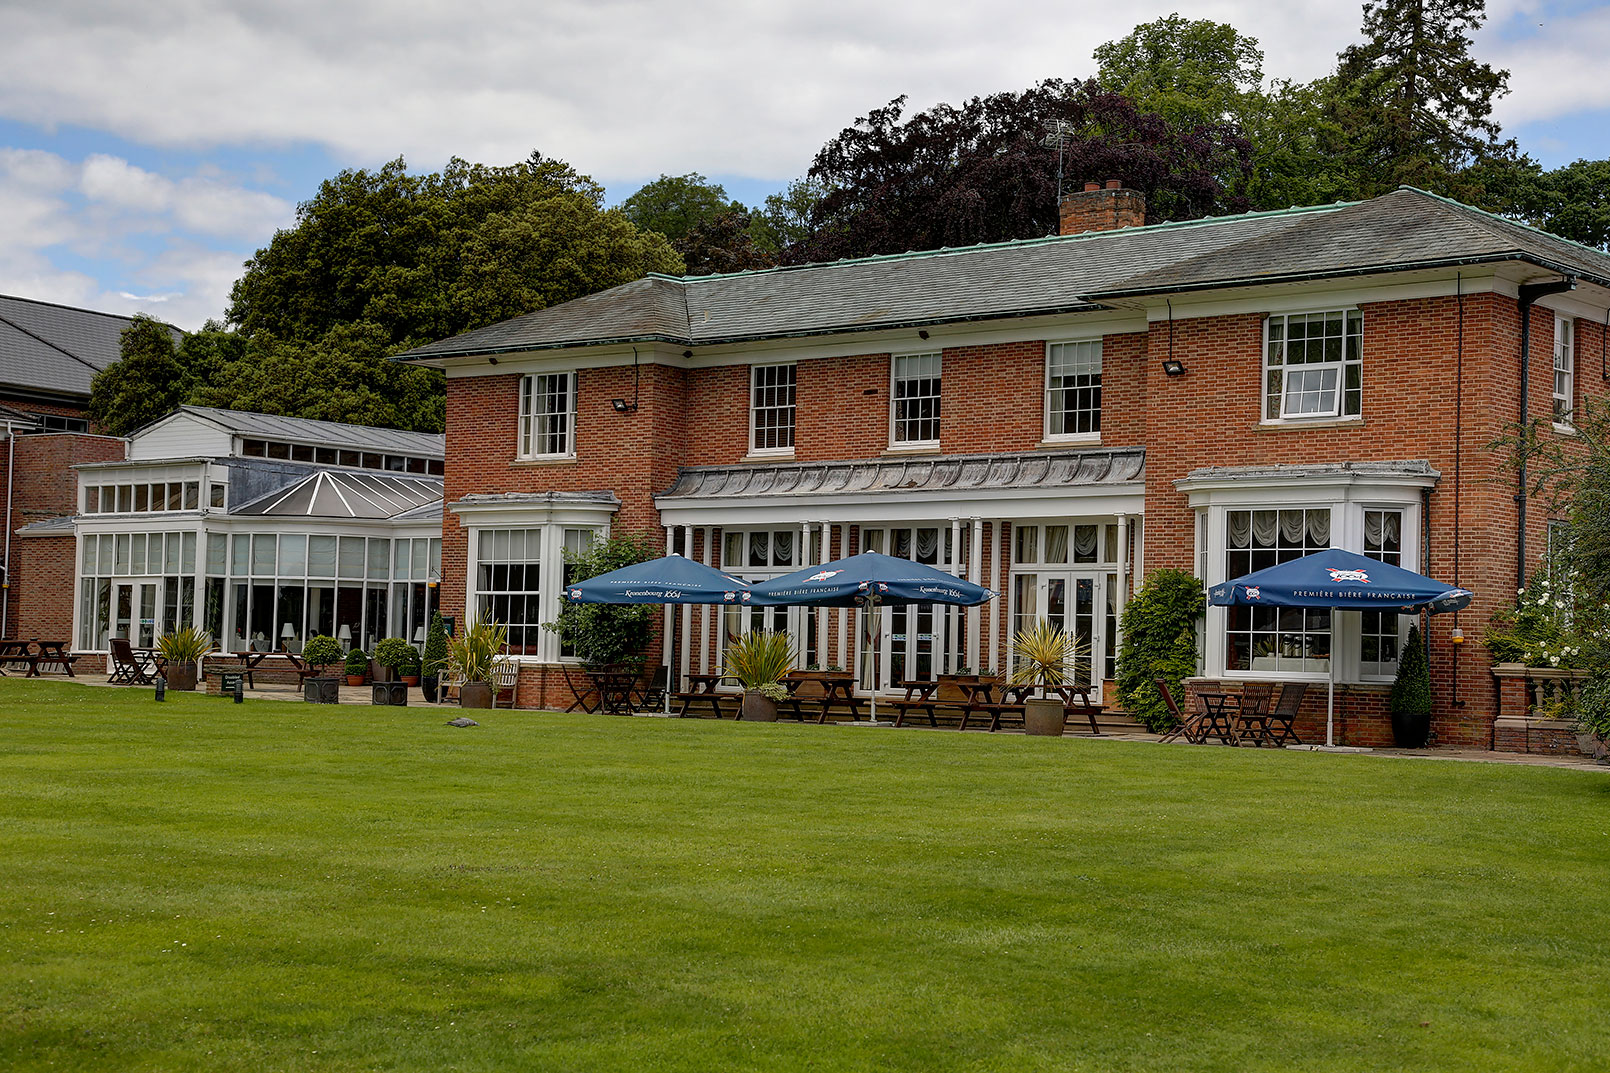 kenwick-park-hotel-grounds-and-hotel-93-83858